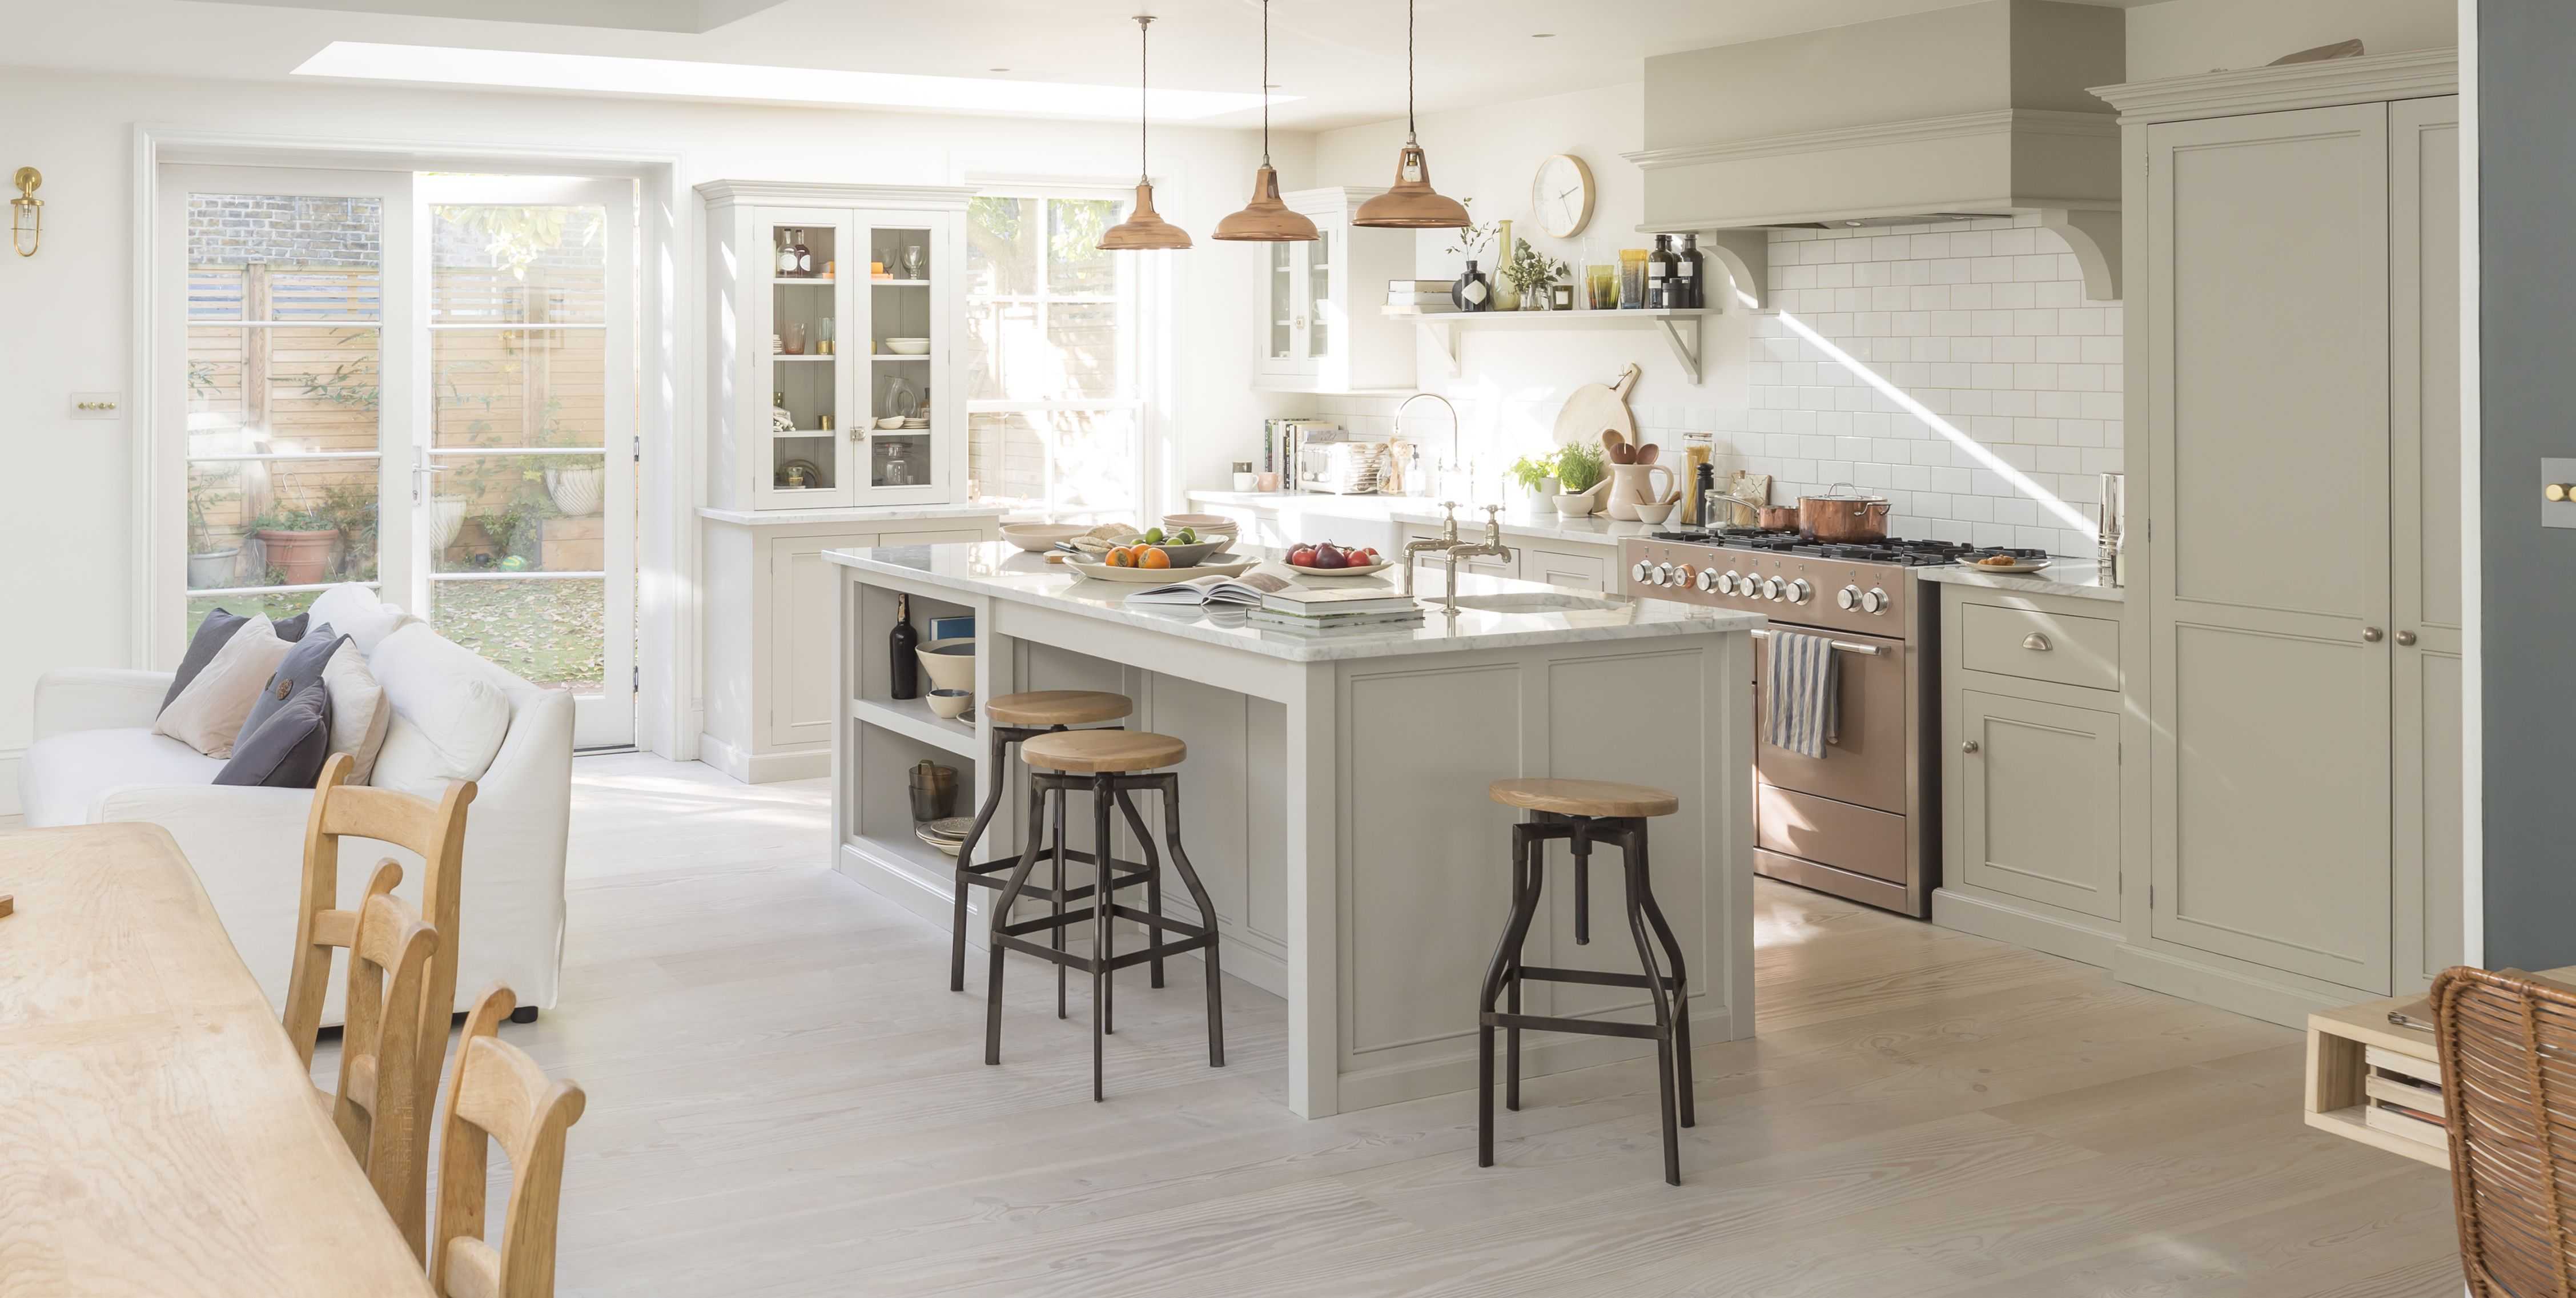 5 cheap updates that will totally transform a tired kitchen